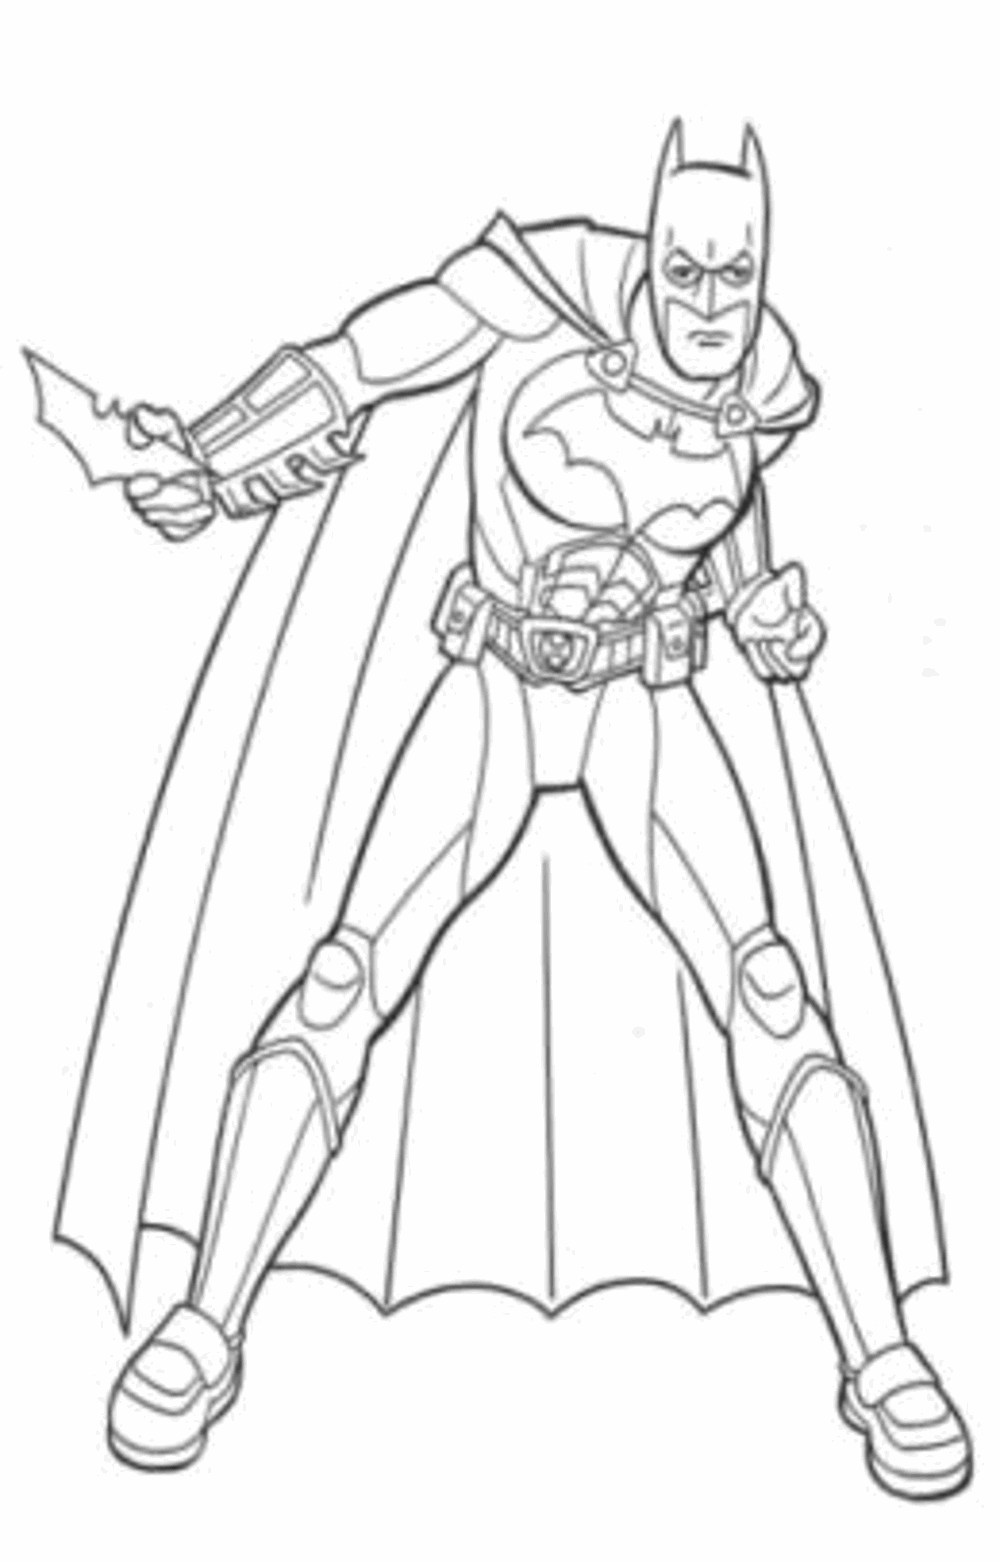 batman pictures to colour in 17 batman coloring pages psd ai vector eps free batman pictures in colour to